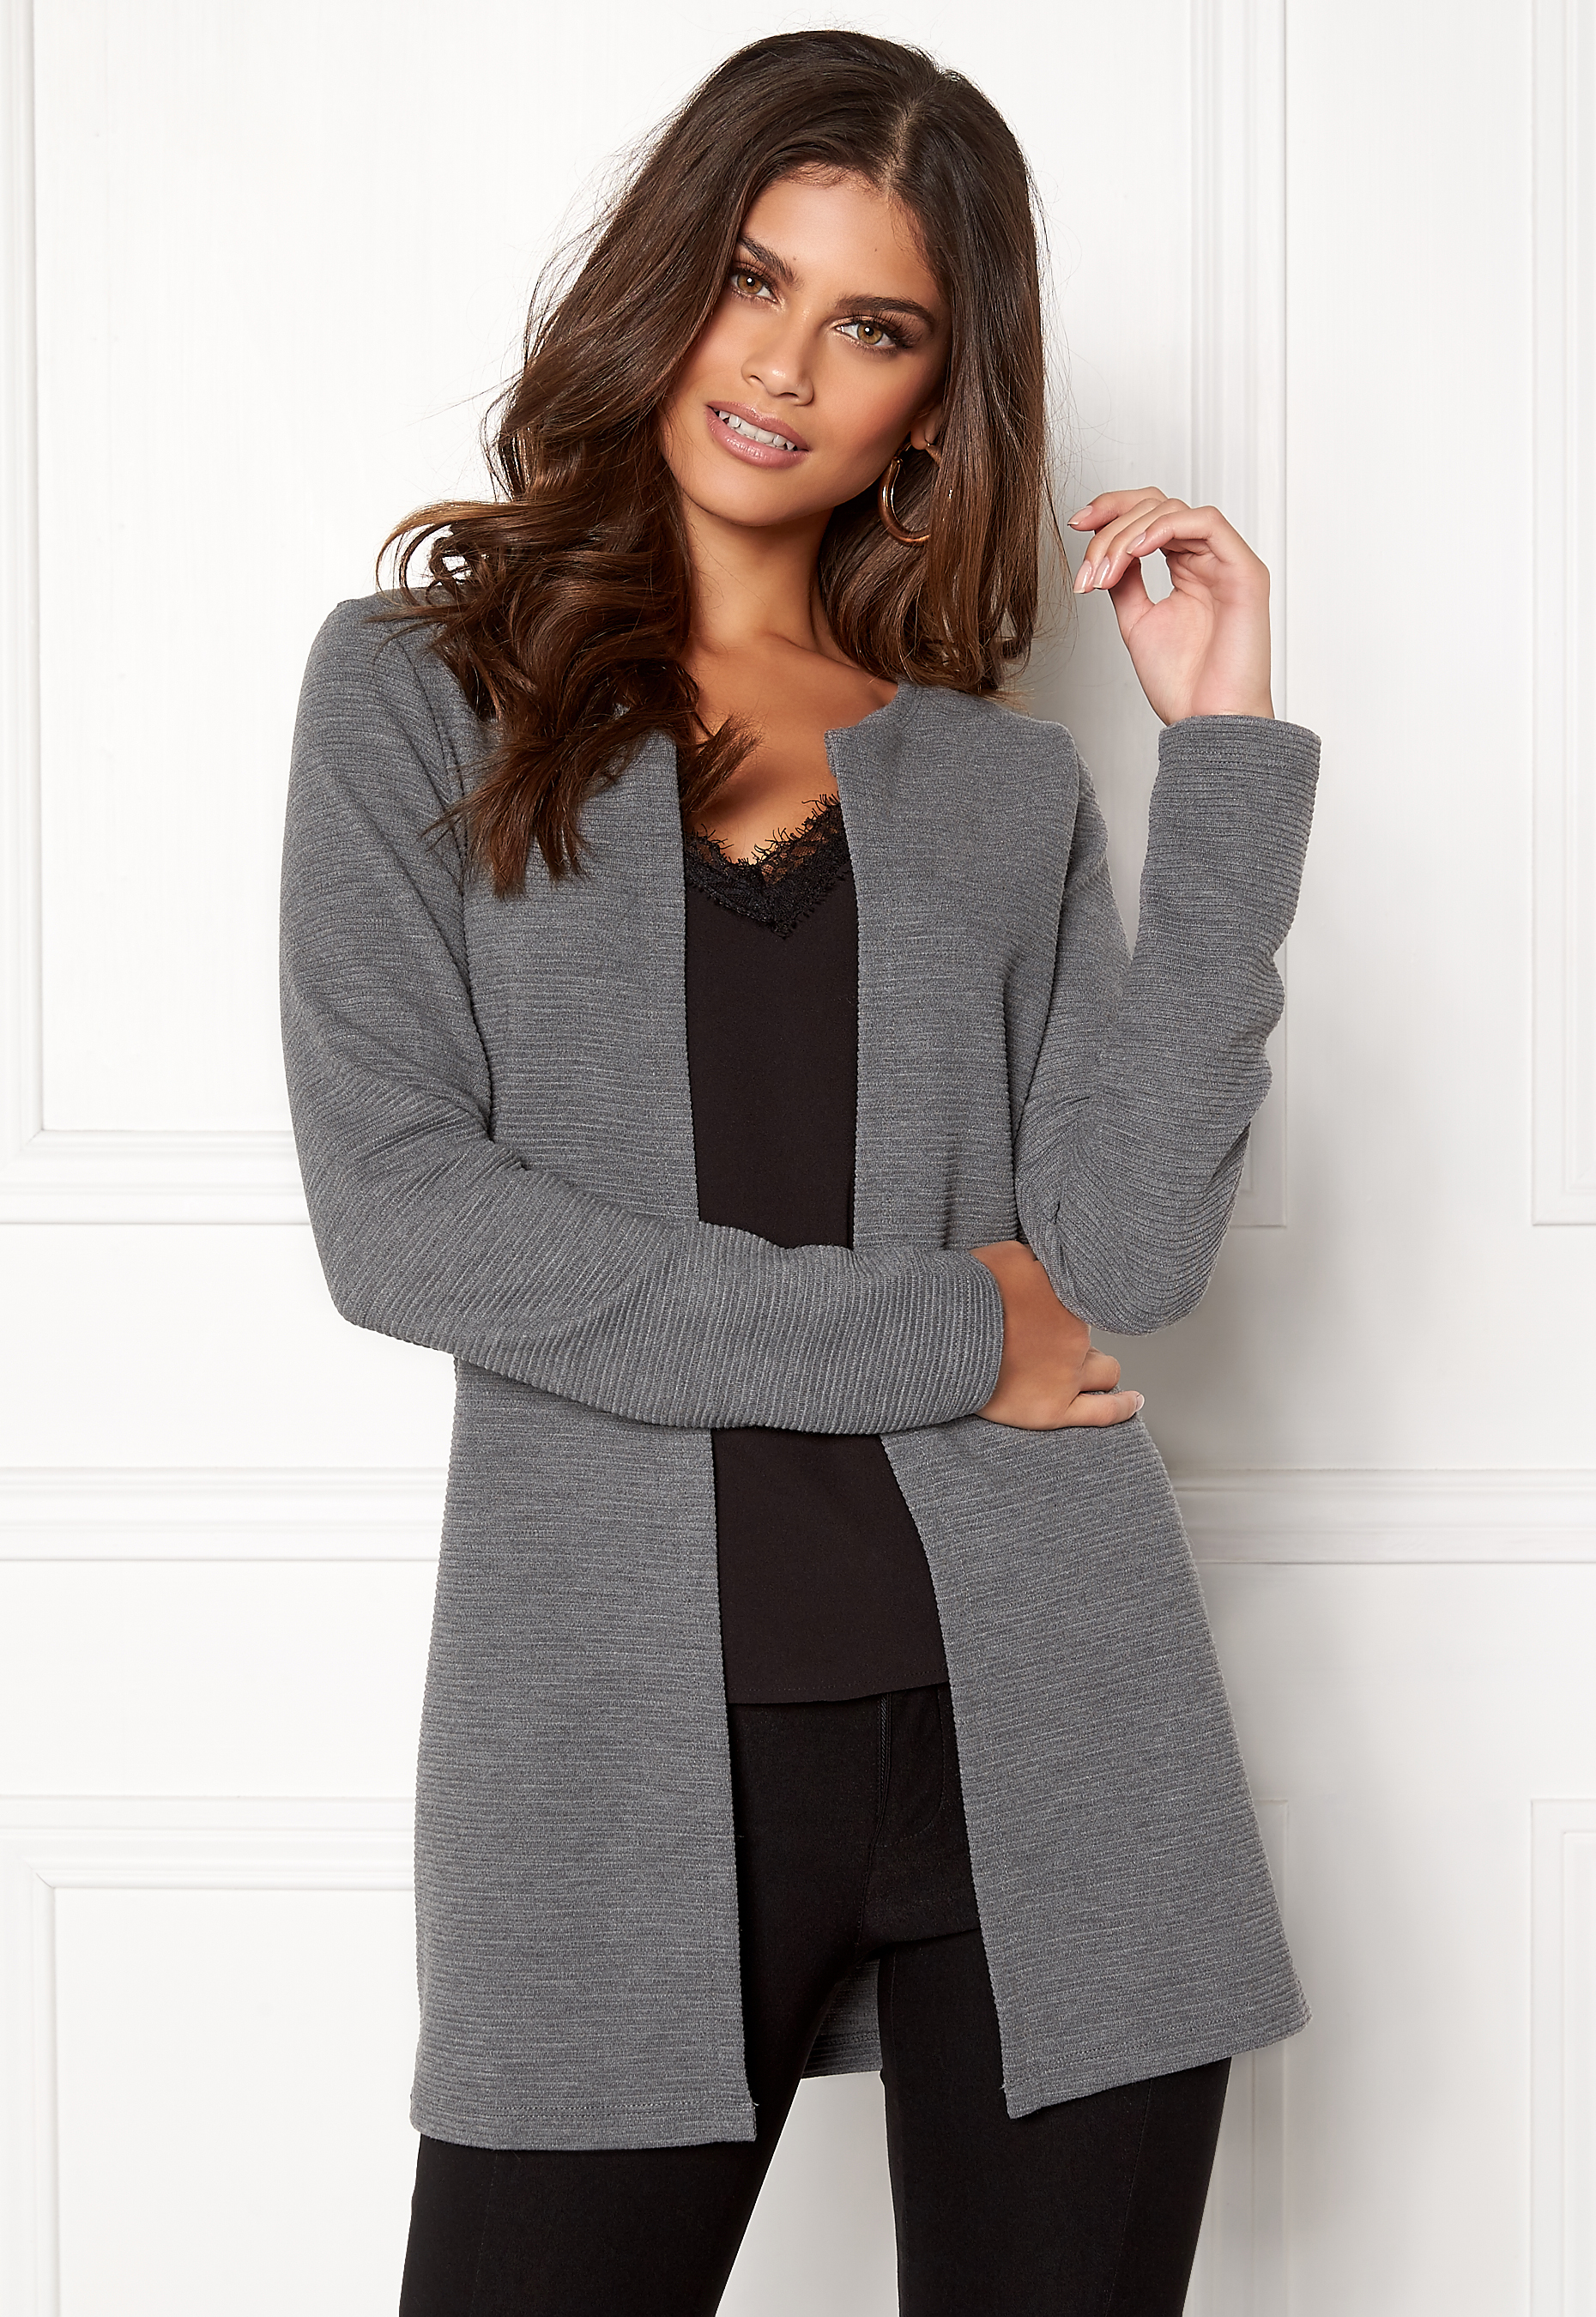 Melange Vero Ls Paris Bubbleroom Medium Cardigan Grey Moda SqZw1Pf